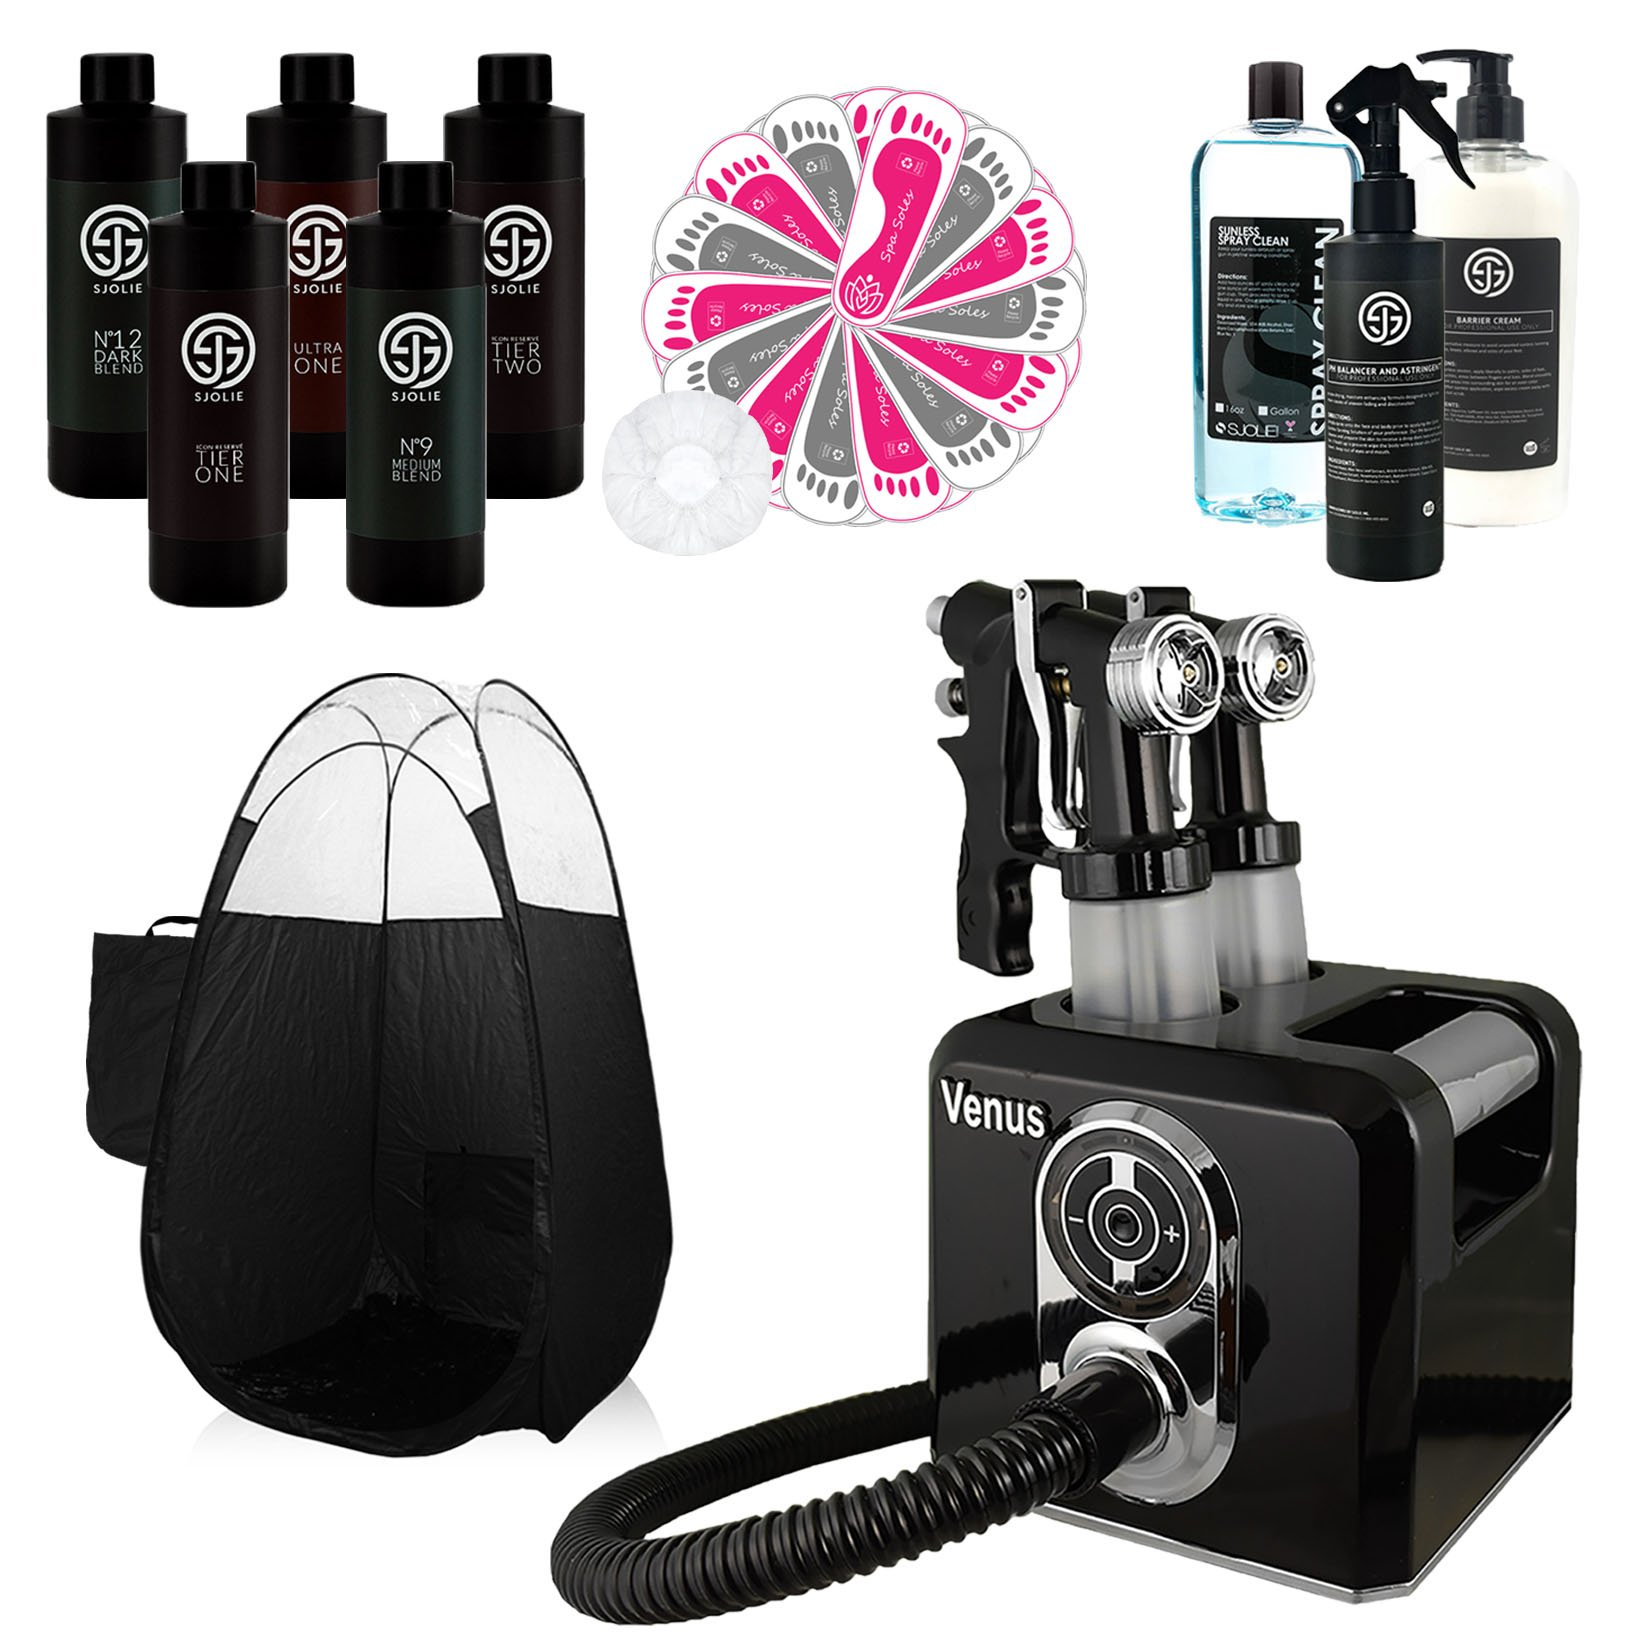 Venus Spray Tan Machine and Gun System with SJolie Airbrush Tanning Solution Sunless Pro Kit and Pop Up Black Tent